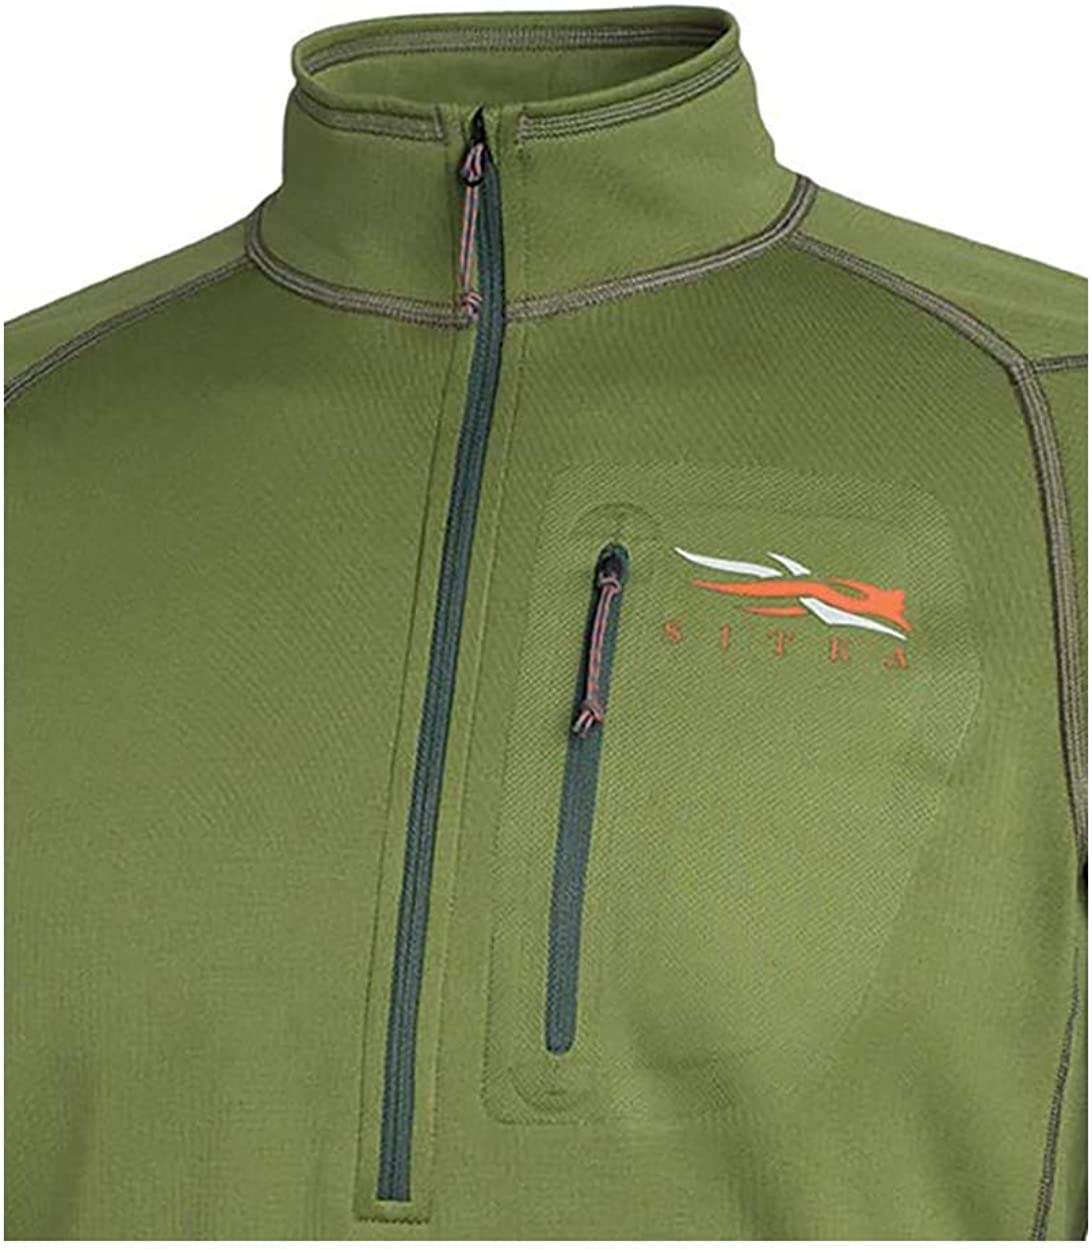 SITKA Gear New for 2019 CORE Midweight Zip-T